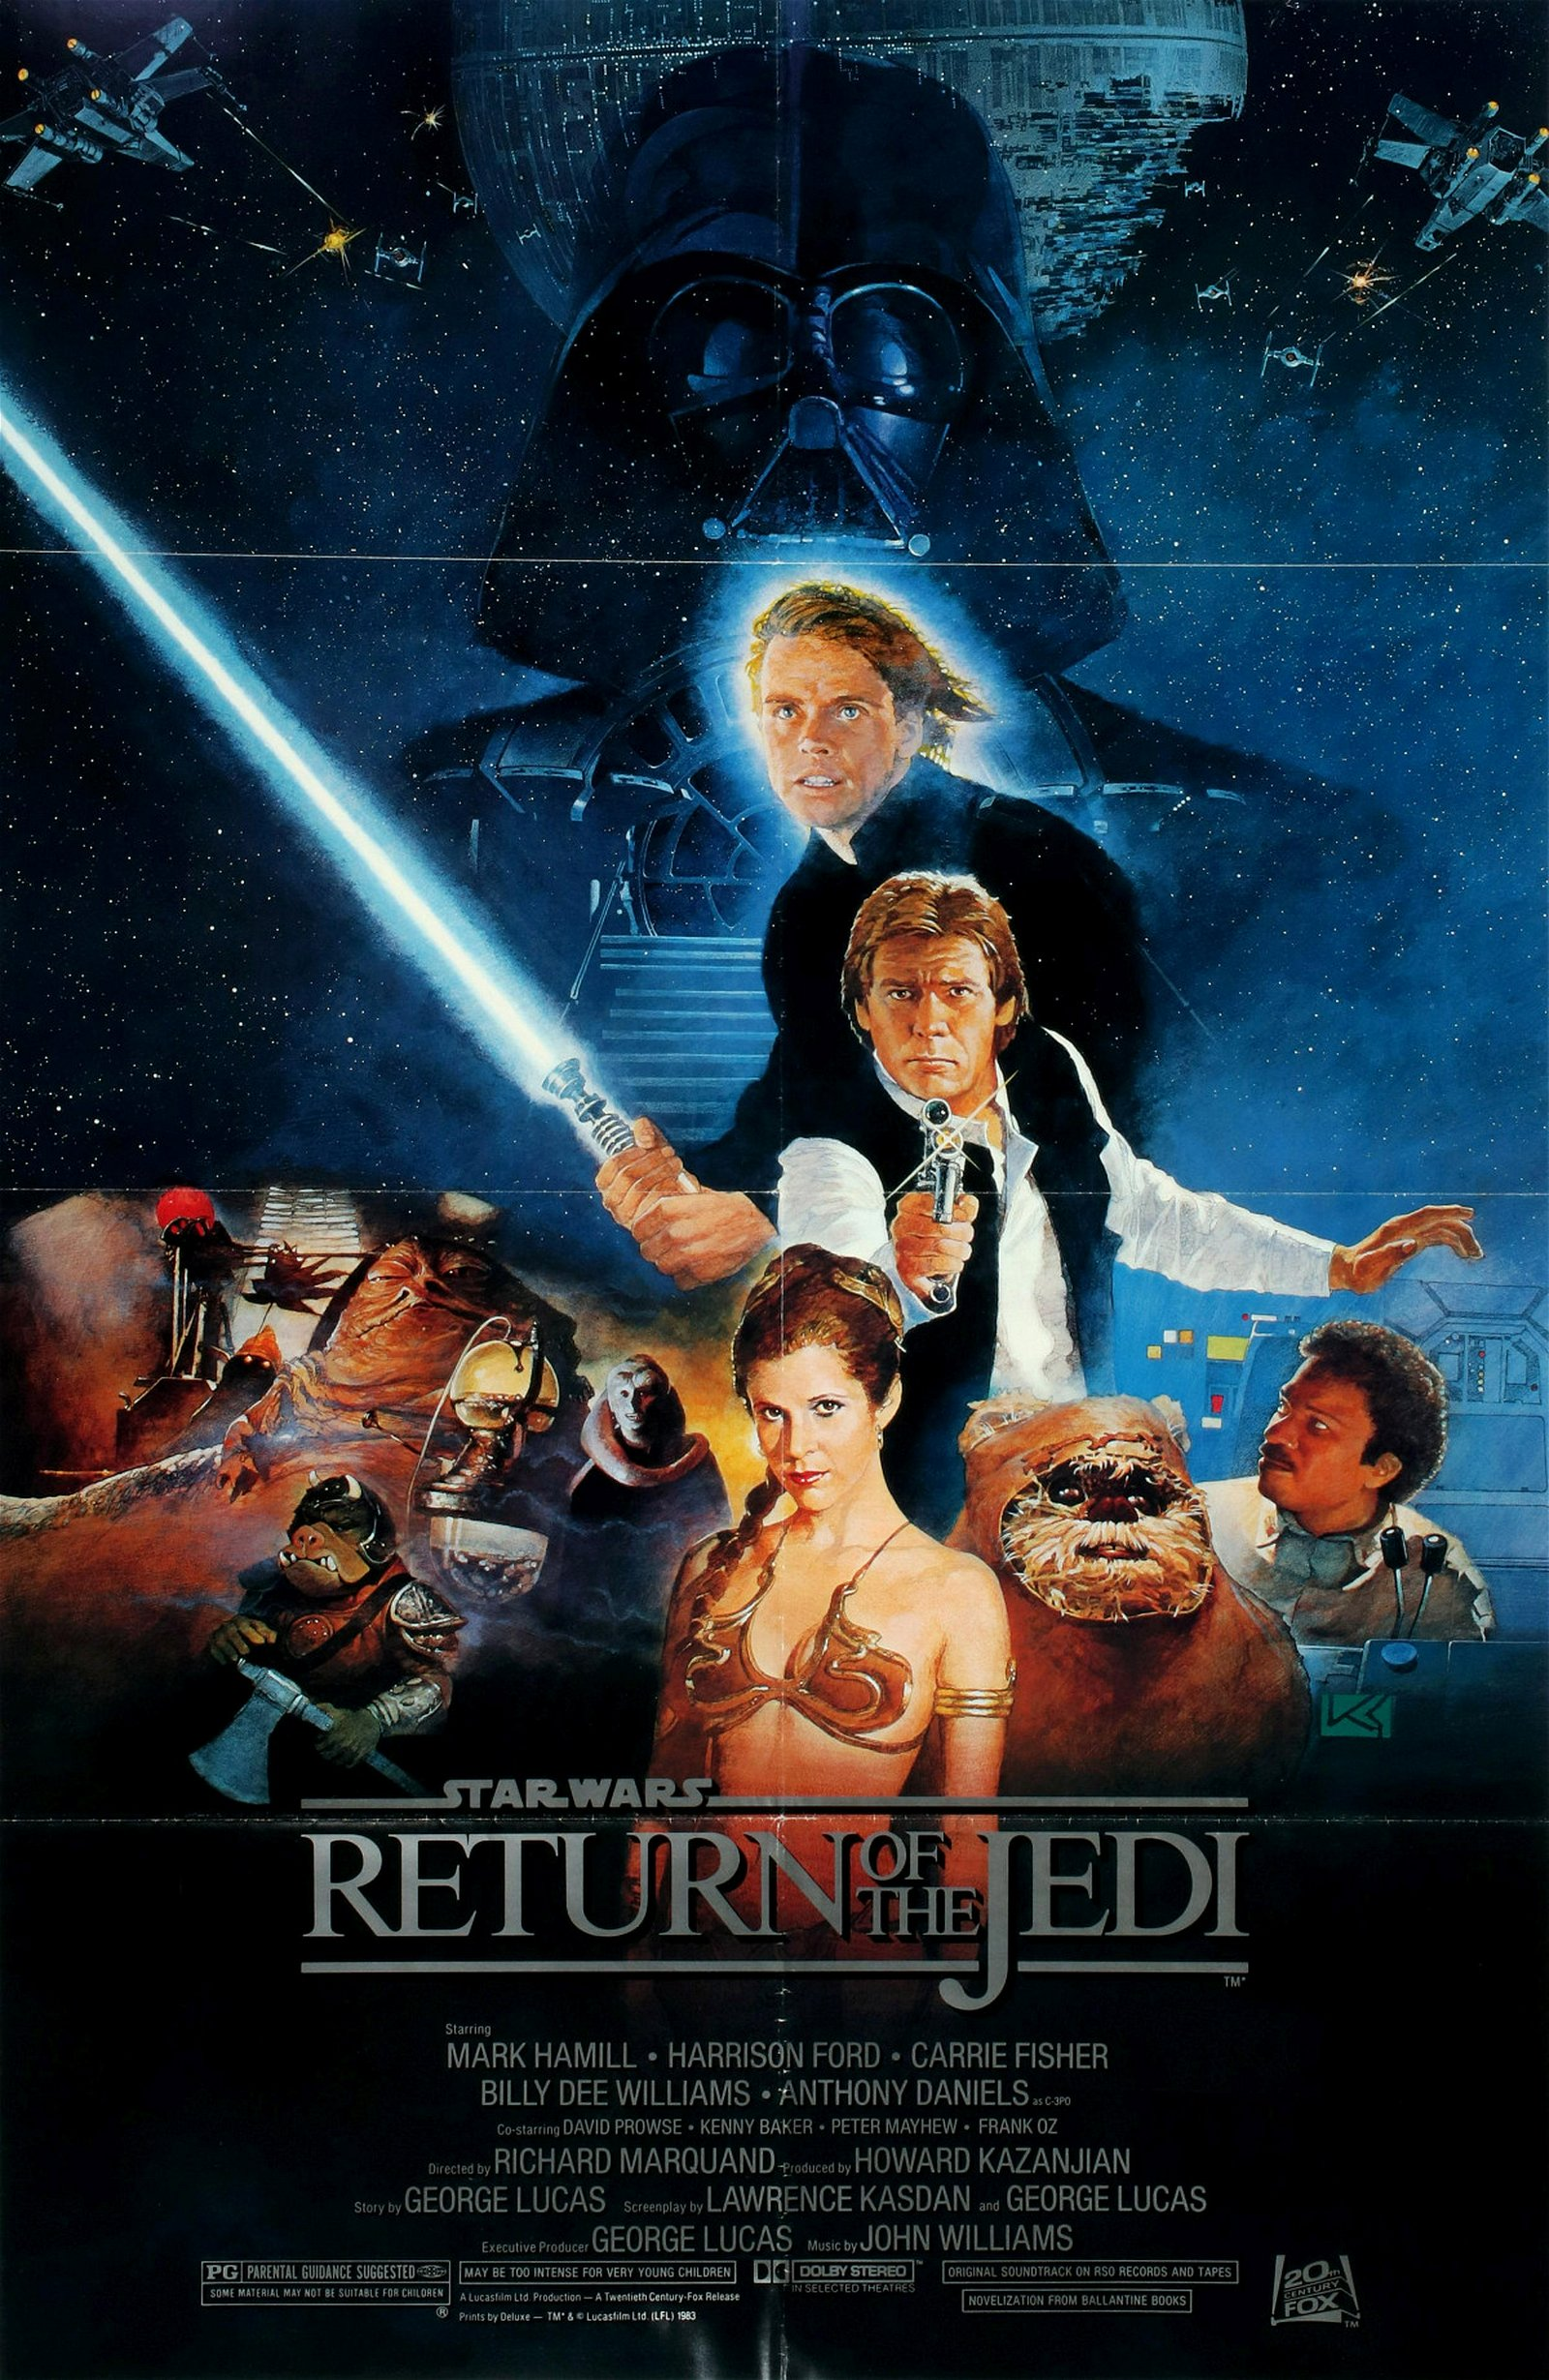 AN ORIGINAL 1983 'RETURN OF THE JEDI' MOVIE POSTER